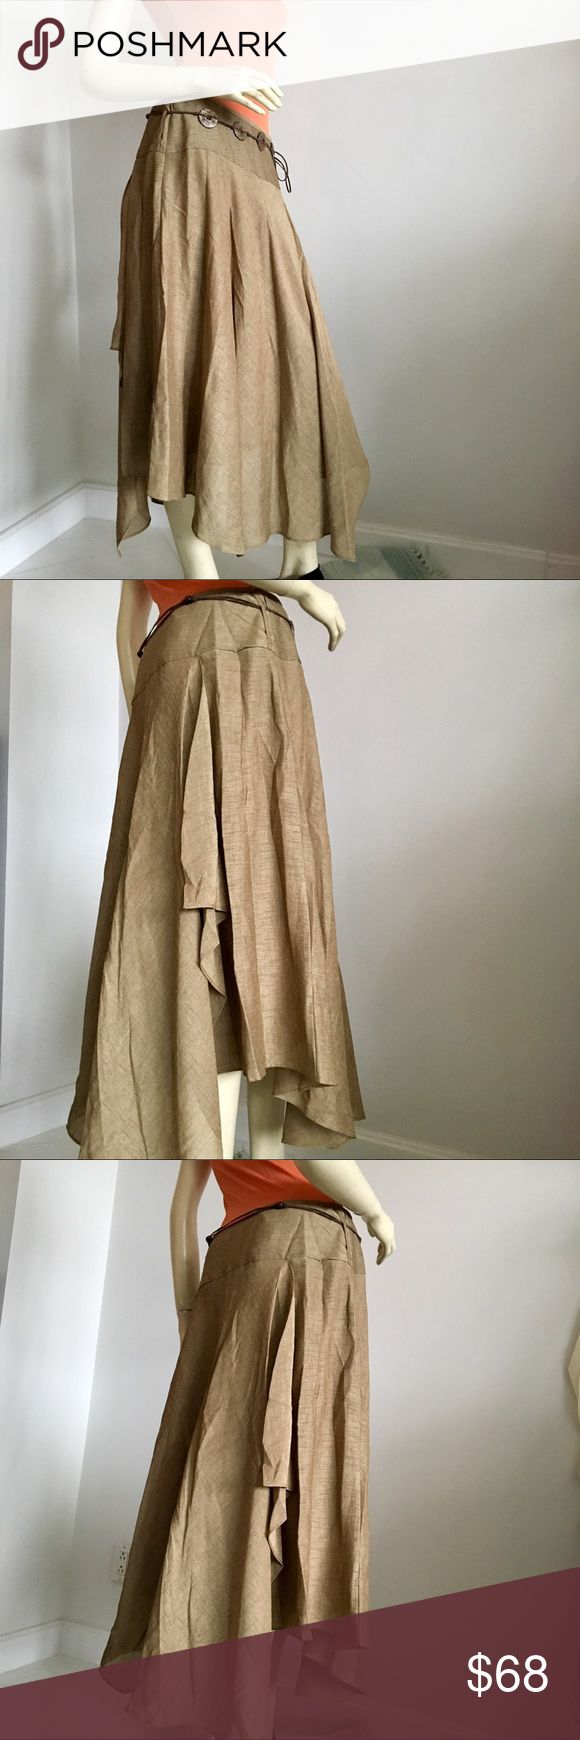 """Nwt Kasper handkerchief hem midi skirt Nwt Kasper flowy handkerchief hem midi skirt. Zips up on the side with hook and eye closure. Belt loops on the side with beaded belt. 100% polyester. Color sepia. Size 6P waist is 30"""" length along a side seam 28"""".  Made in Indonesia  *bodysuits in closet under tops to match* Kasper Skirts Asymmetrical"""